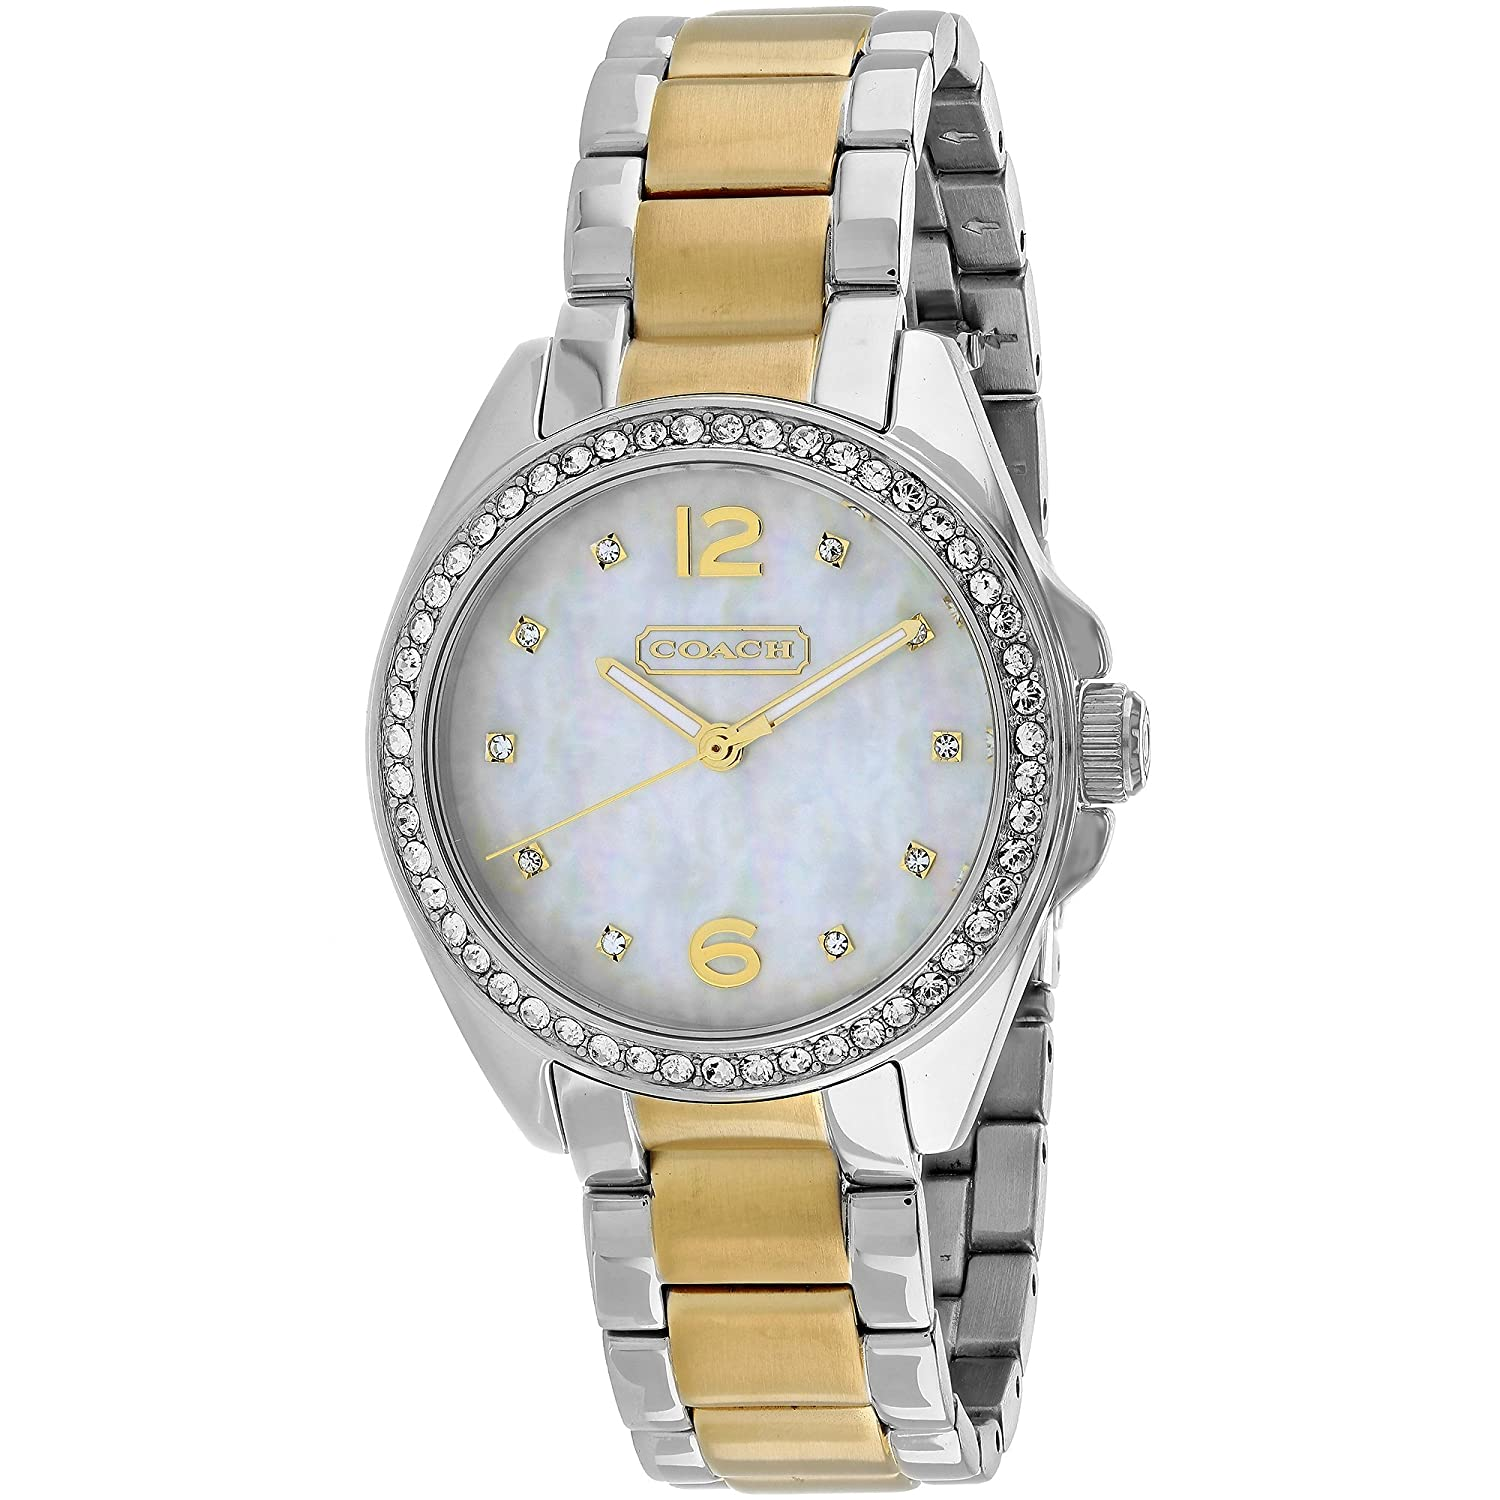 samuel watch d gift product number ladies tone set sekonda pendant bracelet webstore two h